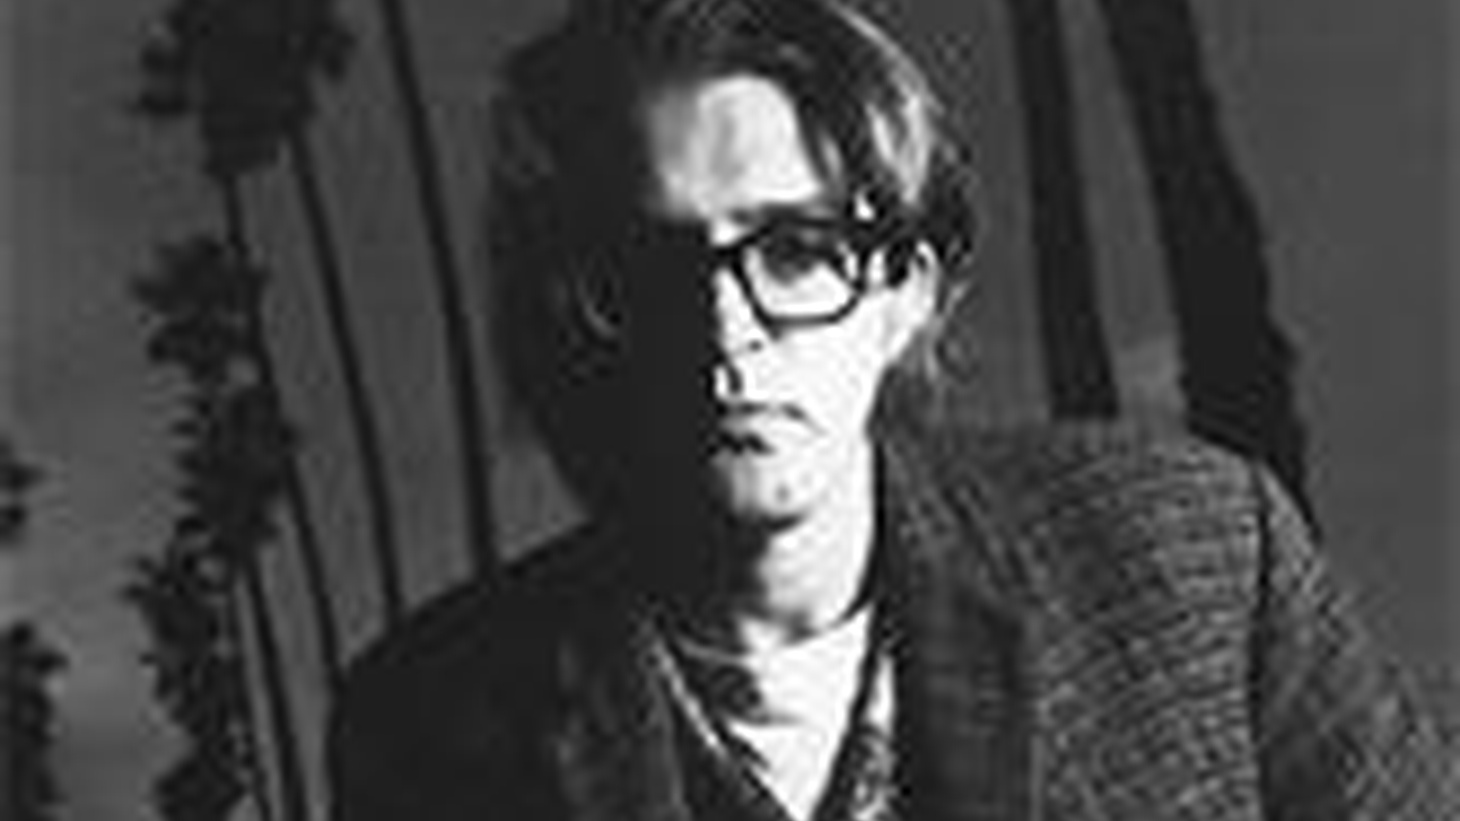 Peter Case joins Gary Calamar as guest DJ from 11pm to midnight. Case is the legendary songwriter and folk-rocker, whose bands The Nerves and The Plimsouls helped define the West Coast punk and alternative rock scenes, and whose solo work ushered in the Americana music phenomenon. His new album is Let Us Now Praise Sleepy John.